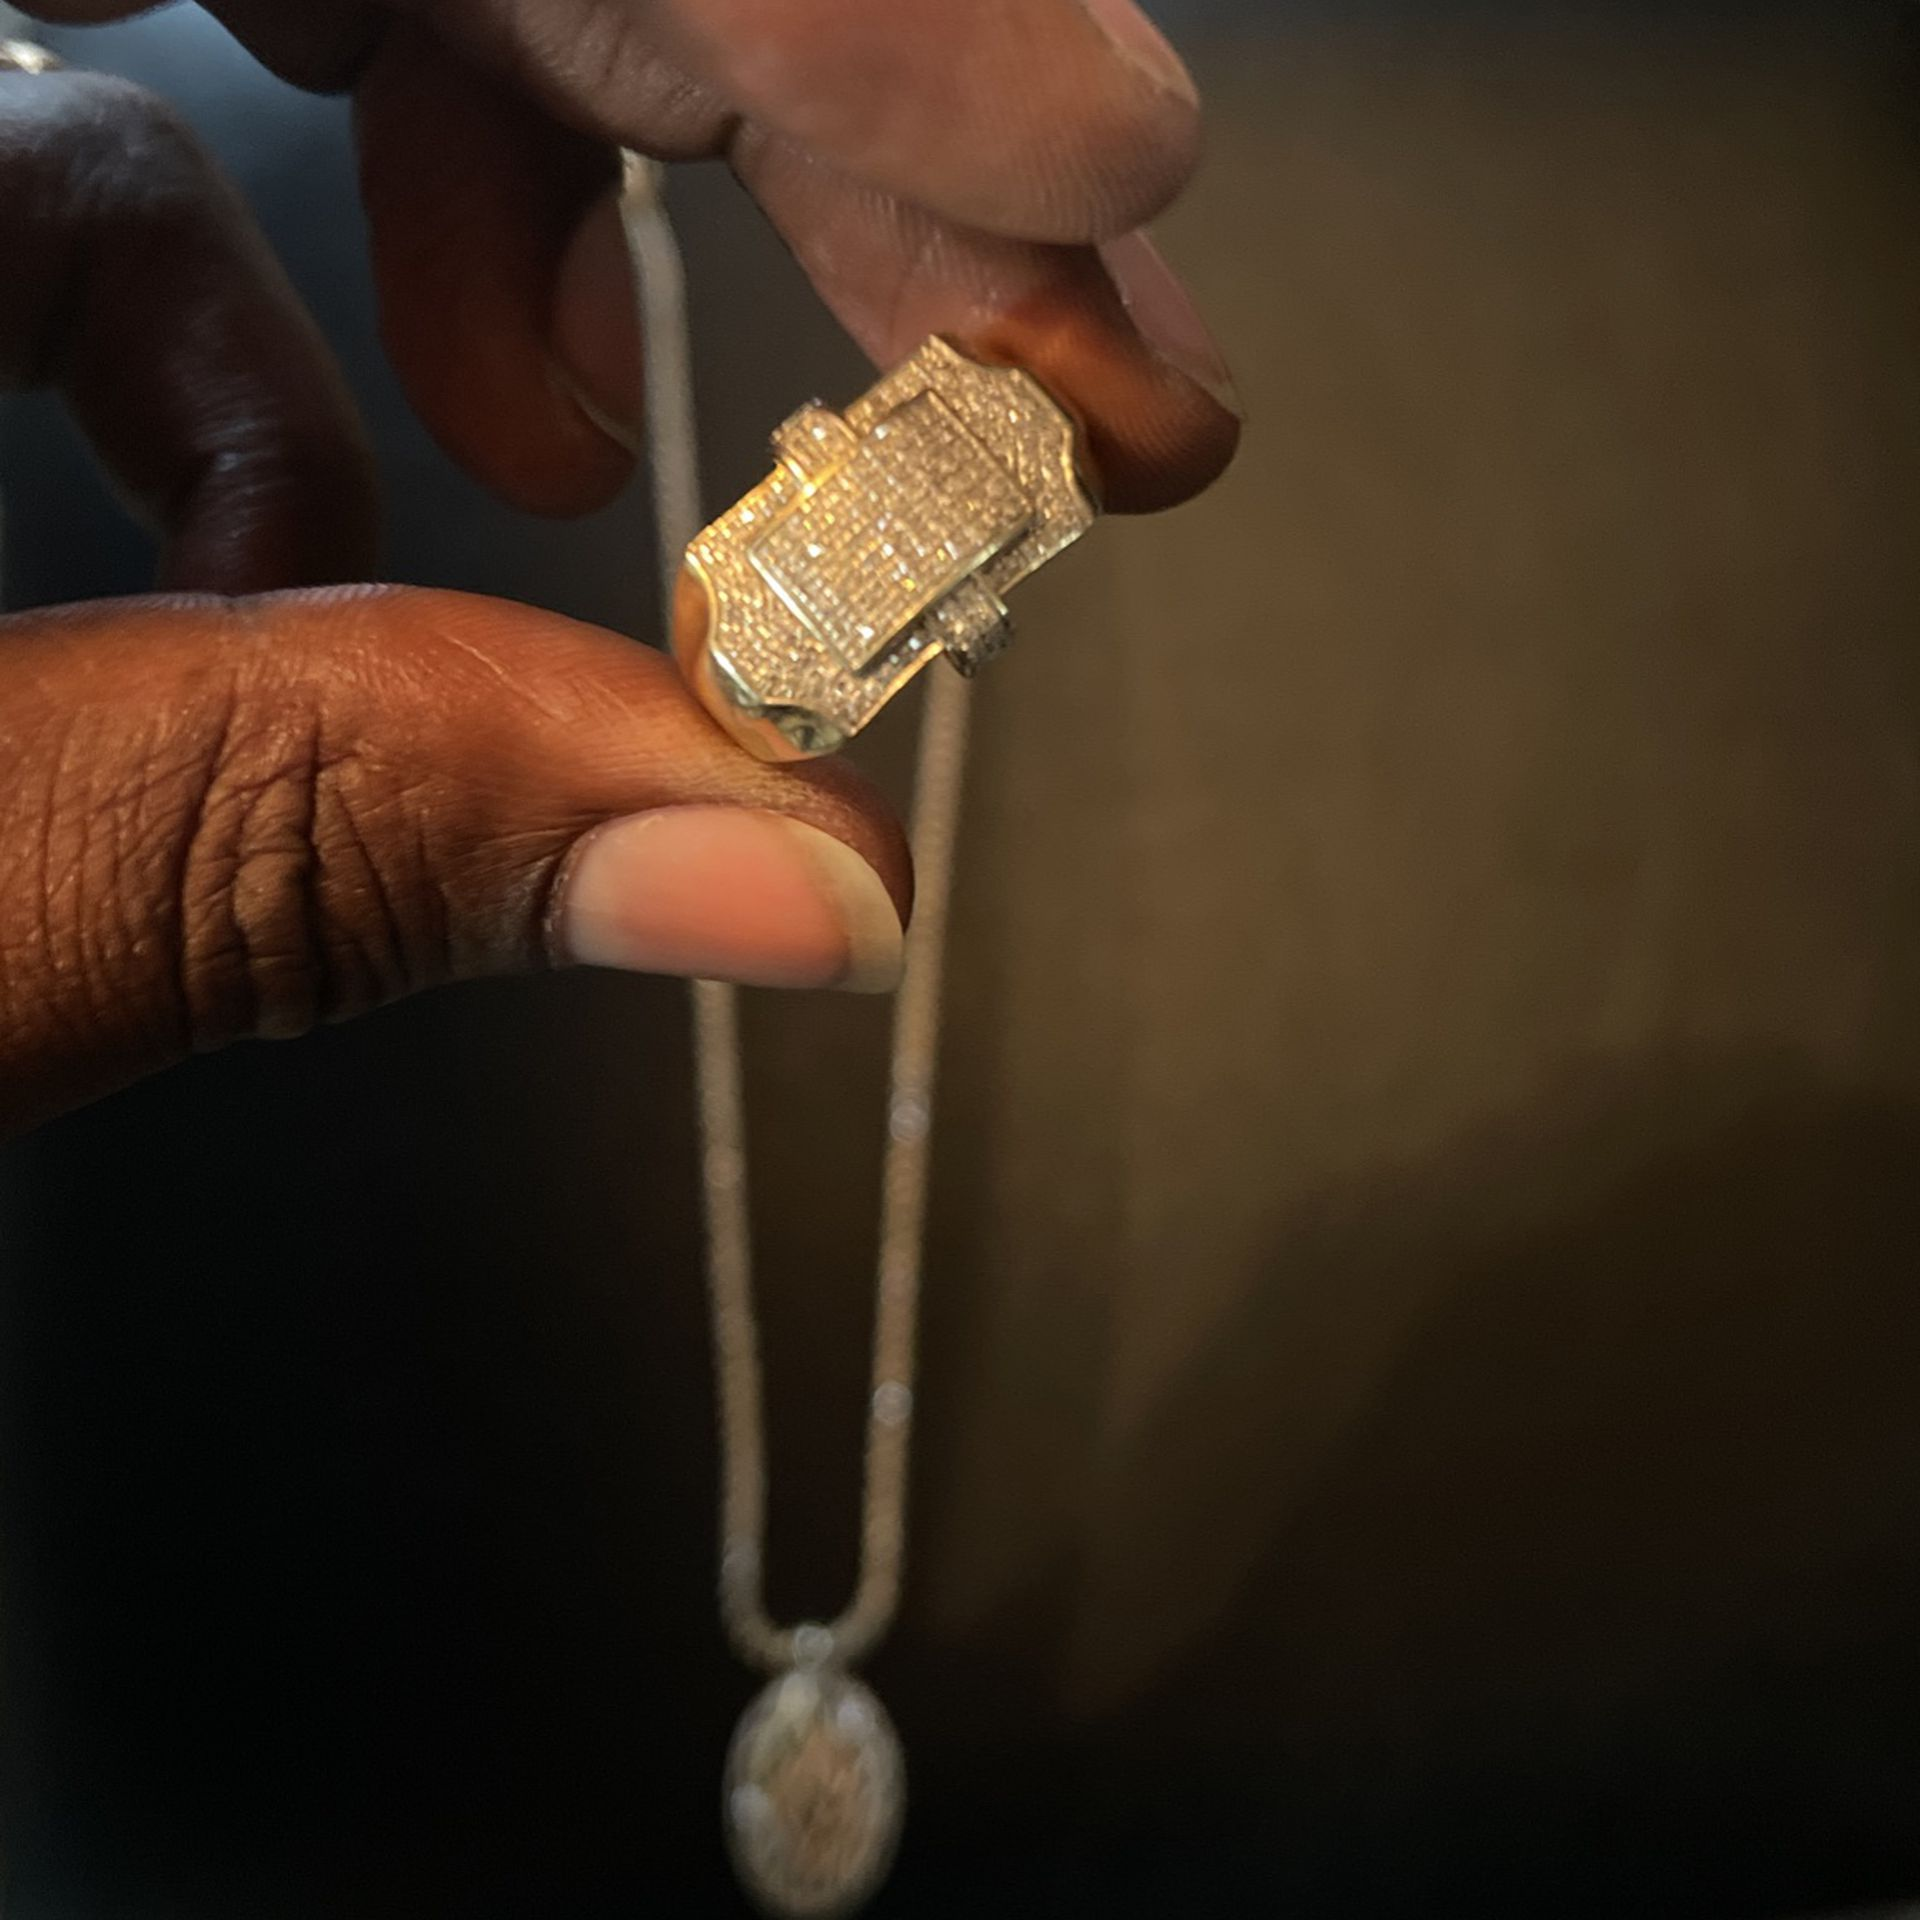 Diamond Tennis Necklace With Pendant 3,000 Without Pendant 2,300  The Ring 600. Or We Can Make A Deal. Or Best Offer. Won't Respond To Bullshit 💯✌🏾